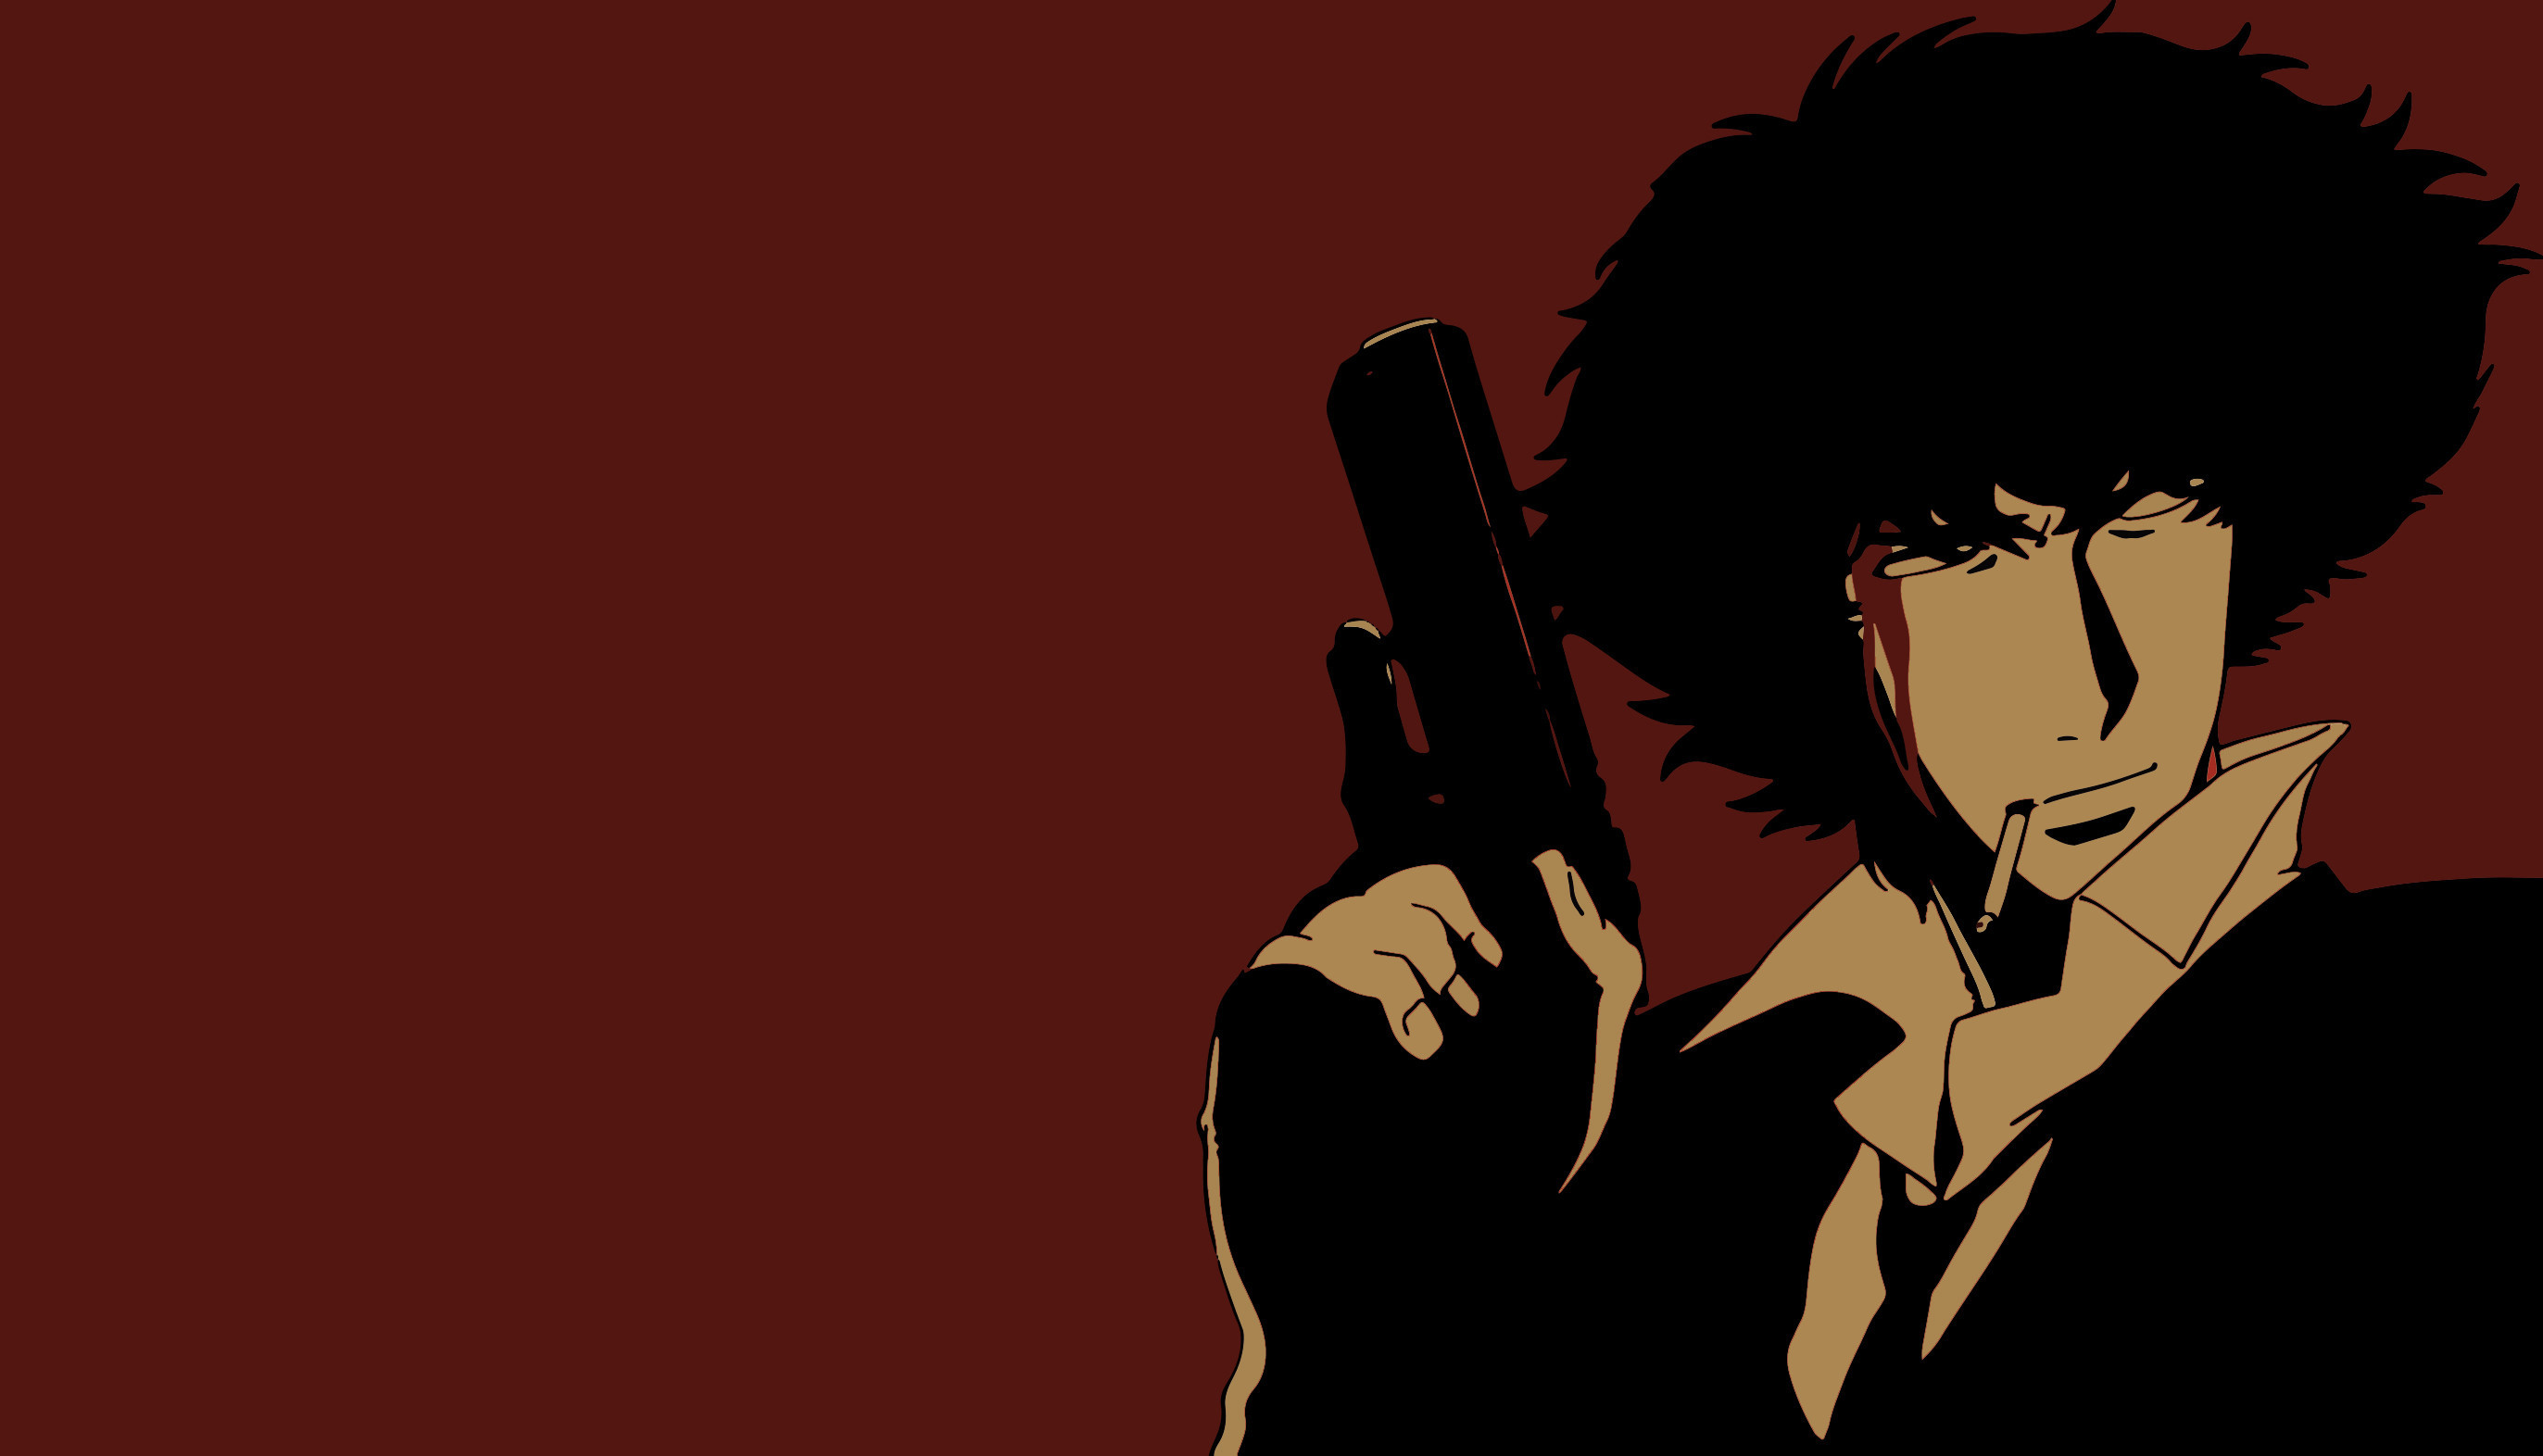 299 Cowboy Bebop HD Wallpapers | Backgrounds – Wallpaper Abyss – Page 10